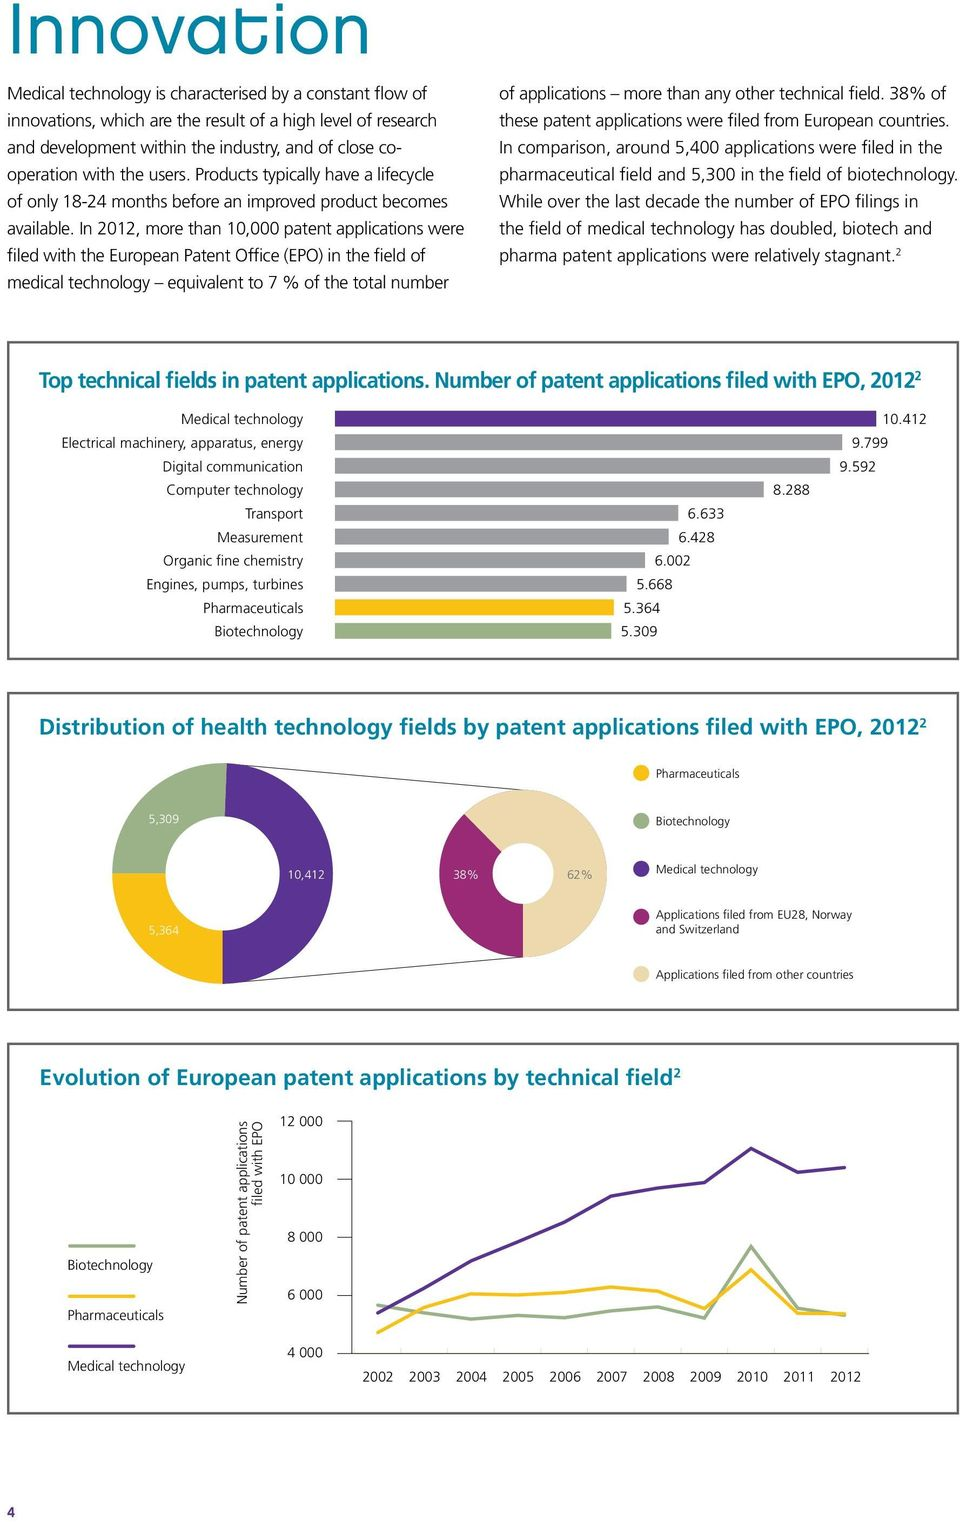 In 2012, more than 10,000 patent applications were filed with the European Patent Office (EPO) in the field of medical technology equivalent to 7 % of the total number of applications more than any